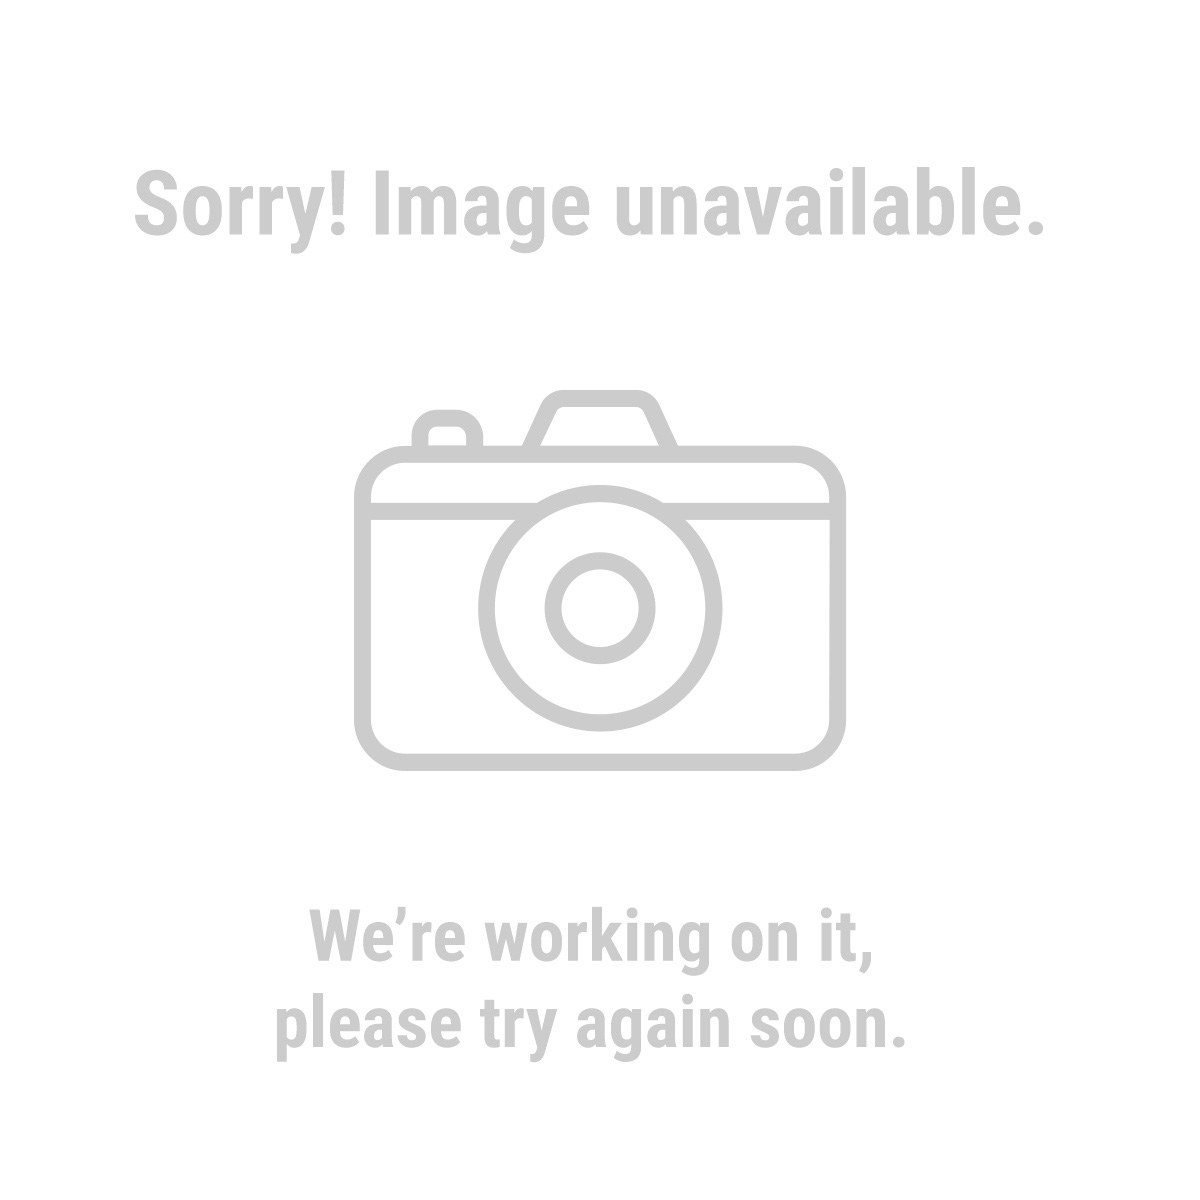 Vanguard 62911 25 Ft. x 10 Gauge Triple Tap Extension Cord